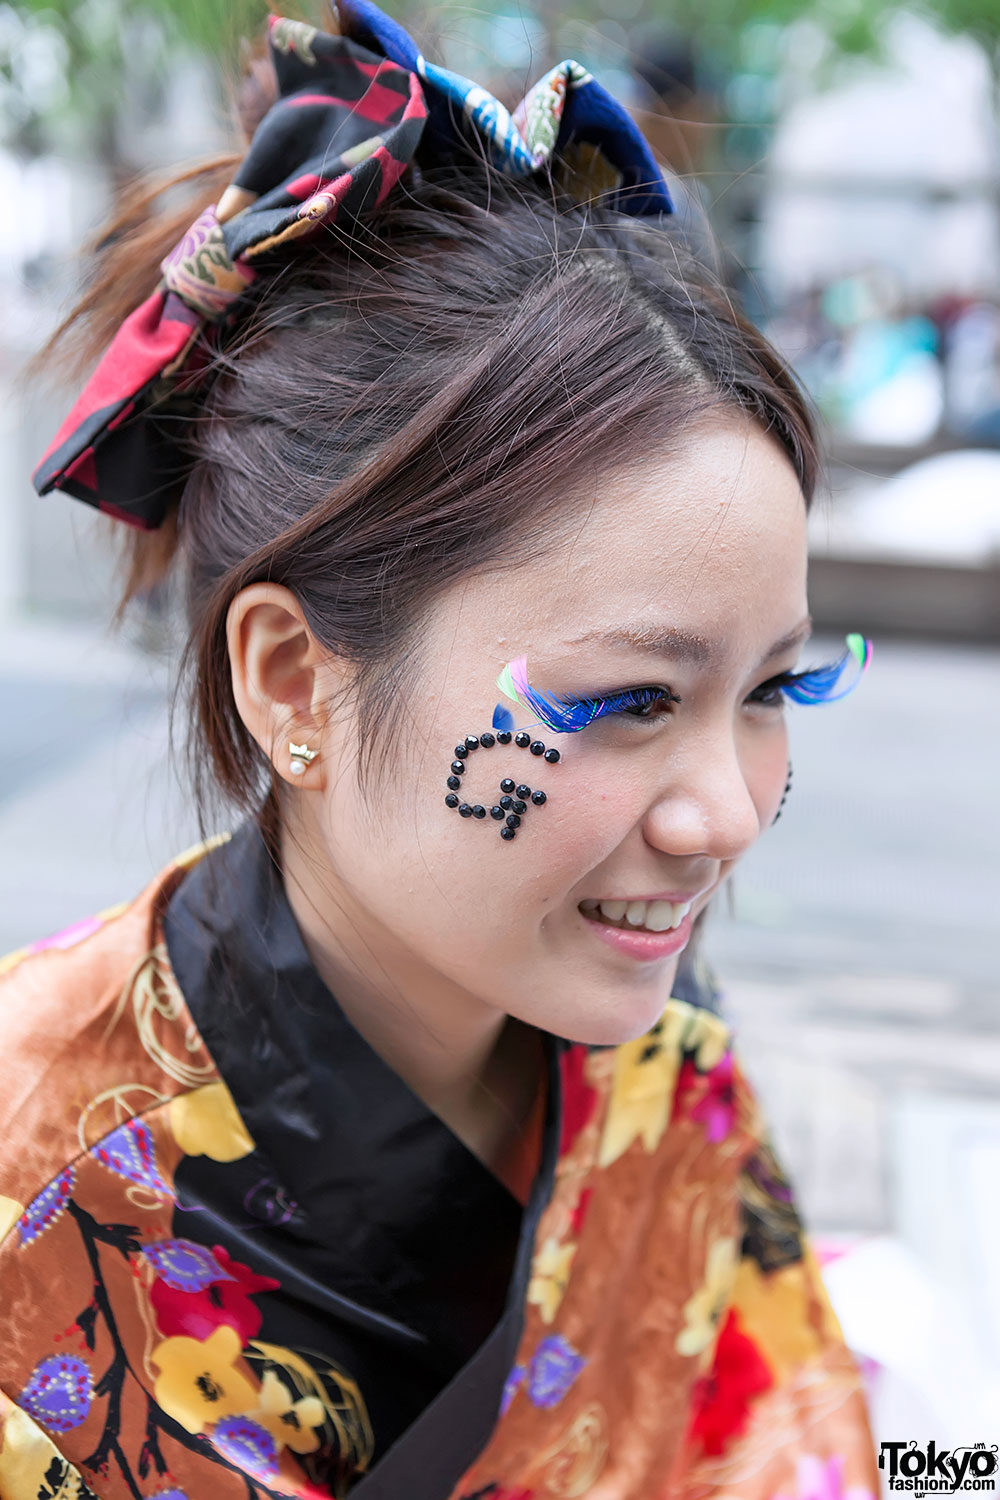 Lady Gaga Fan Fashion in Japan - 150+ Amazing Pictures!